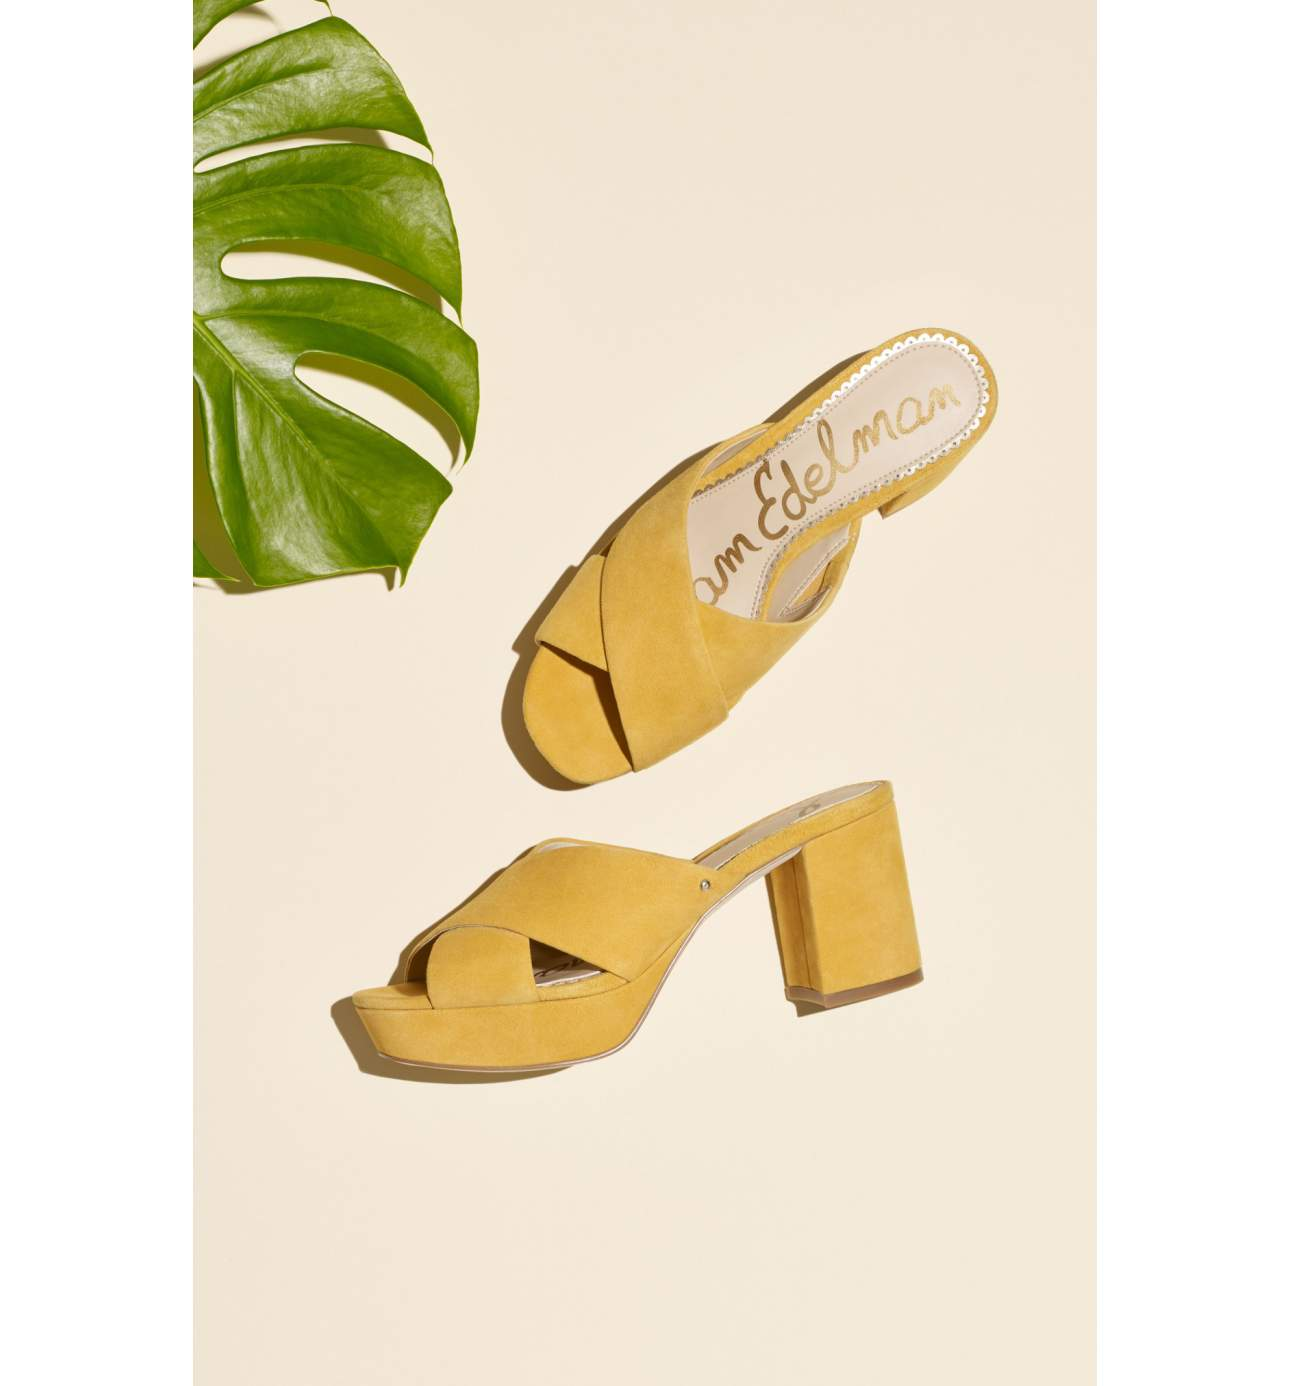 This Spring you're going to see block heels EVERYWHERE.{ } This mustard yellow is a go-to.{ } This sandal also comes in dusty rose and{ } pink lemonade.{ } Dying over those color names btw. Pair with jeans or a floral spring dress. Jayne Sandal - $119.95. (Image: Nordstrom){ }